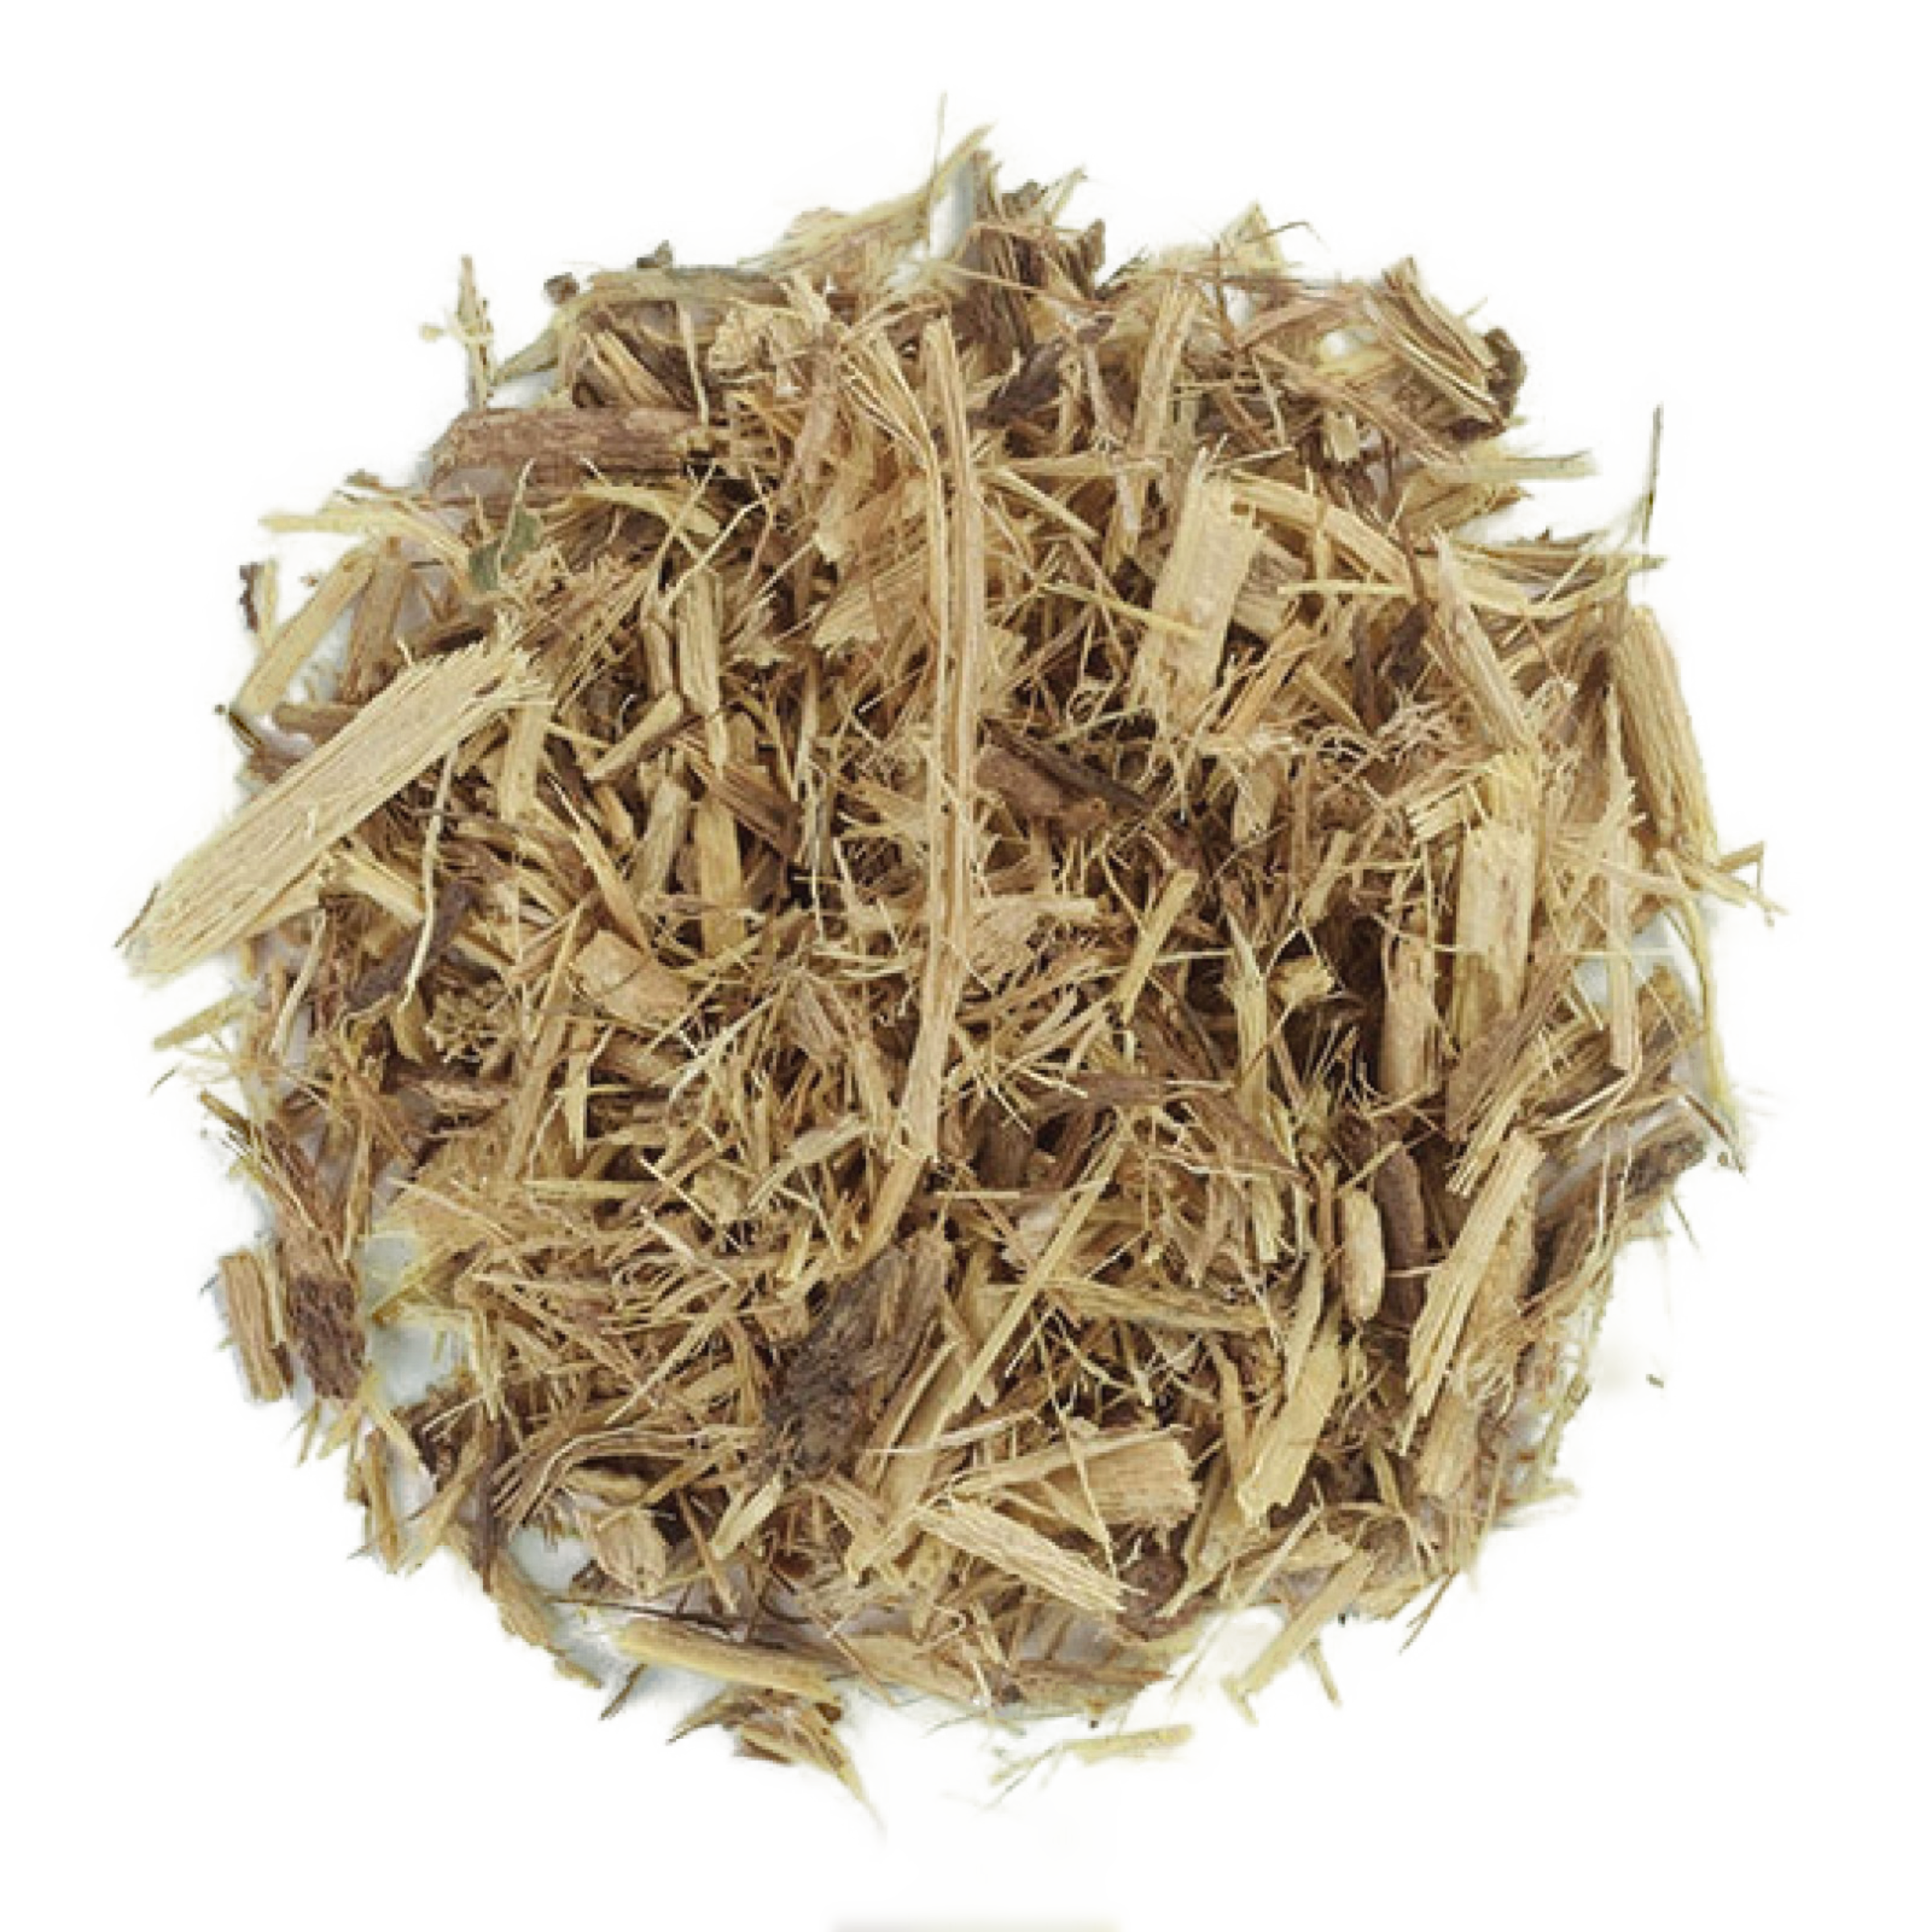 LICORICE ROOT.png